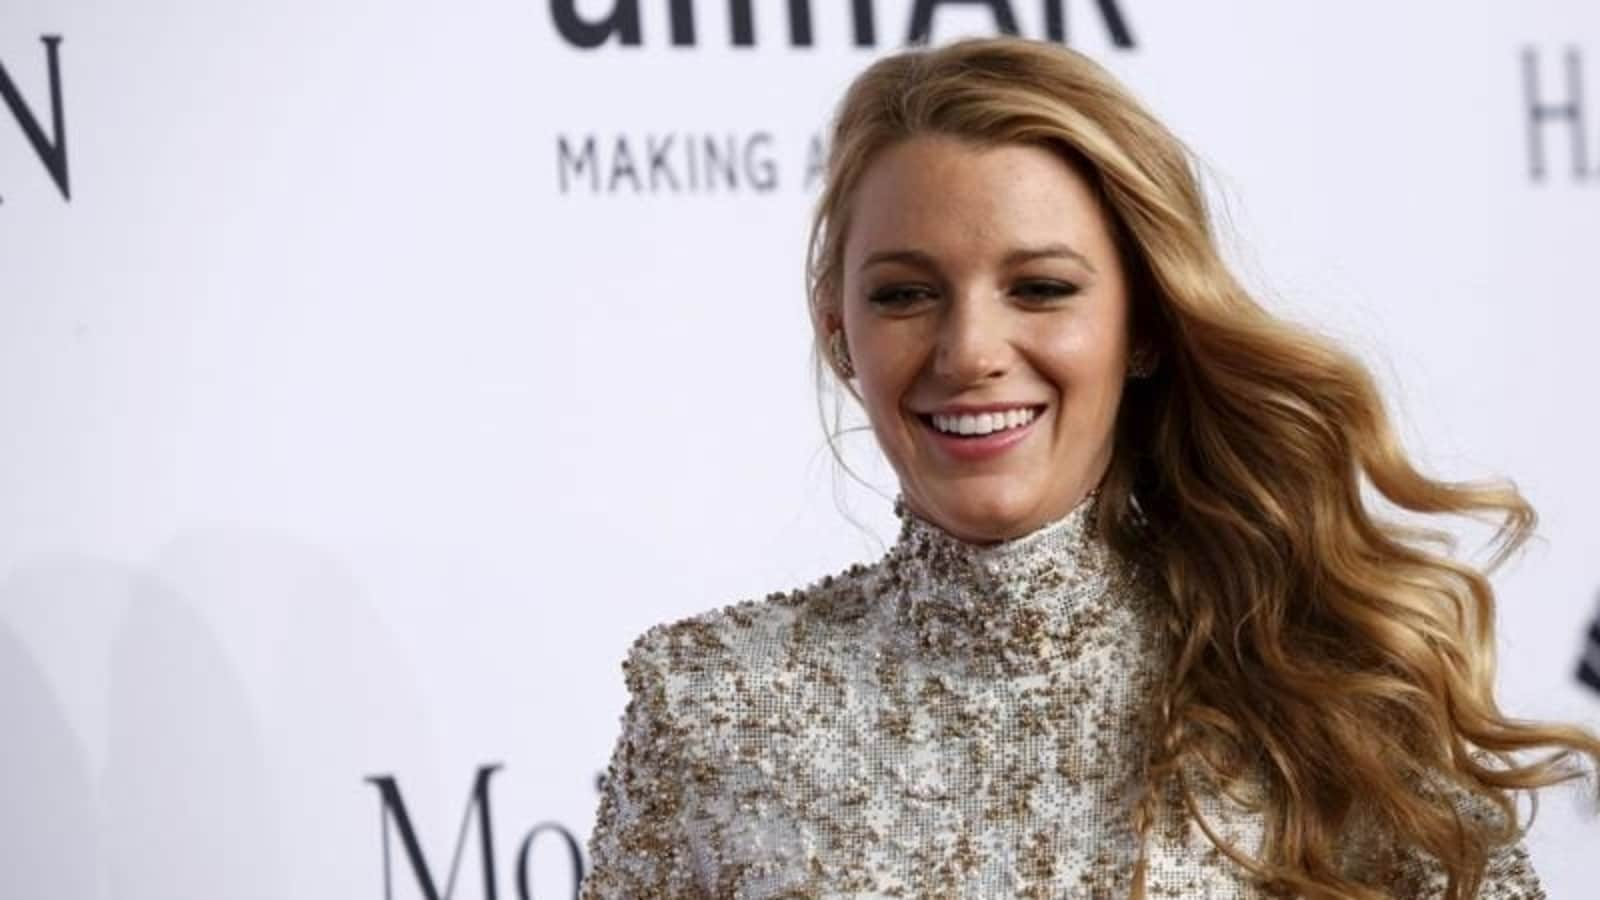 Blake Lively to star in adaptation of Lady Killer comic book for Netflix    Hollywood - Hindustan Times